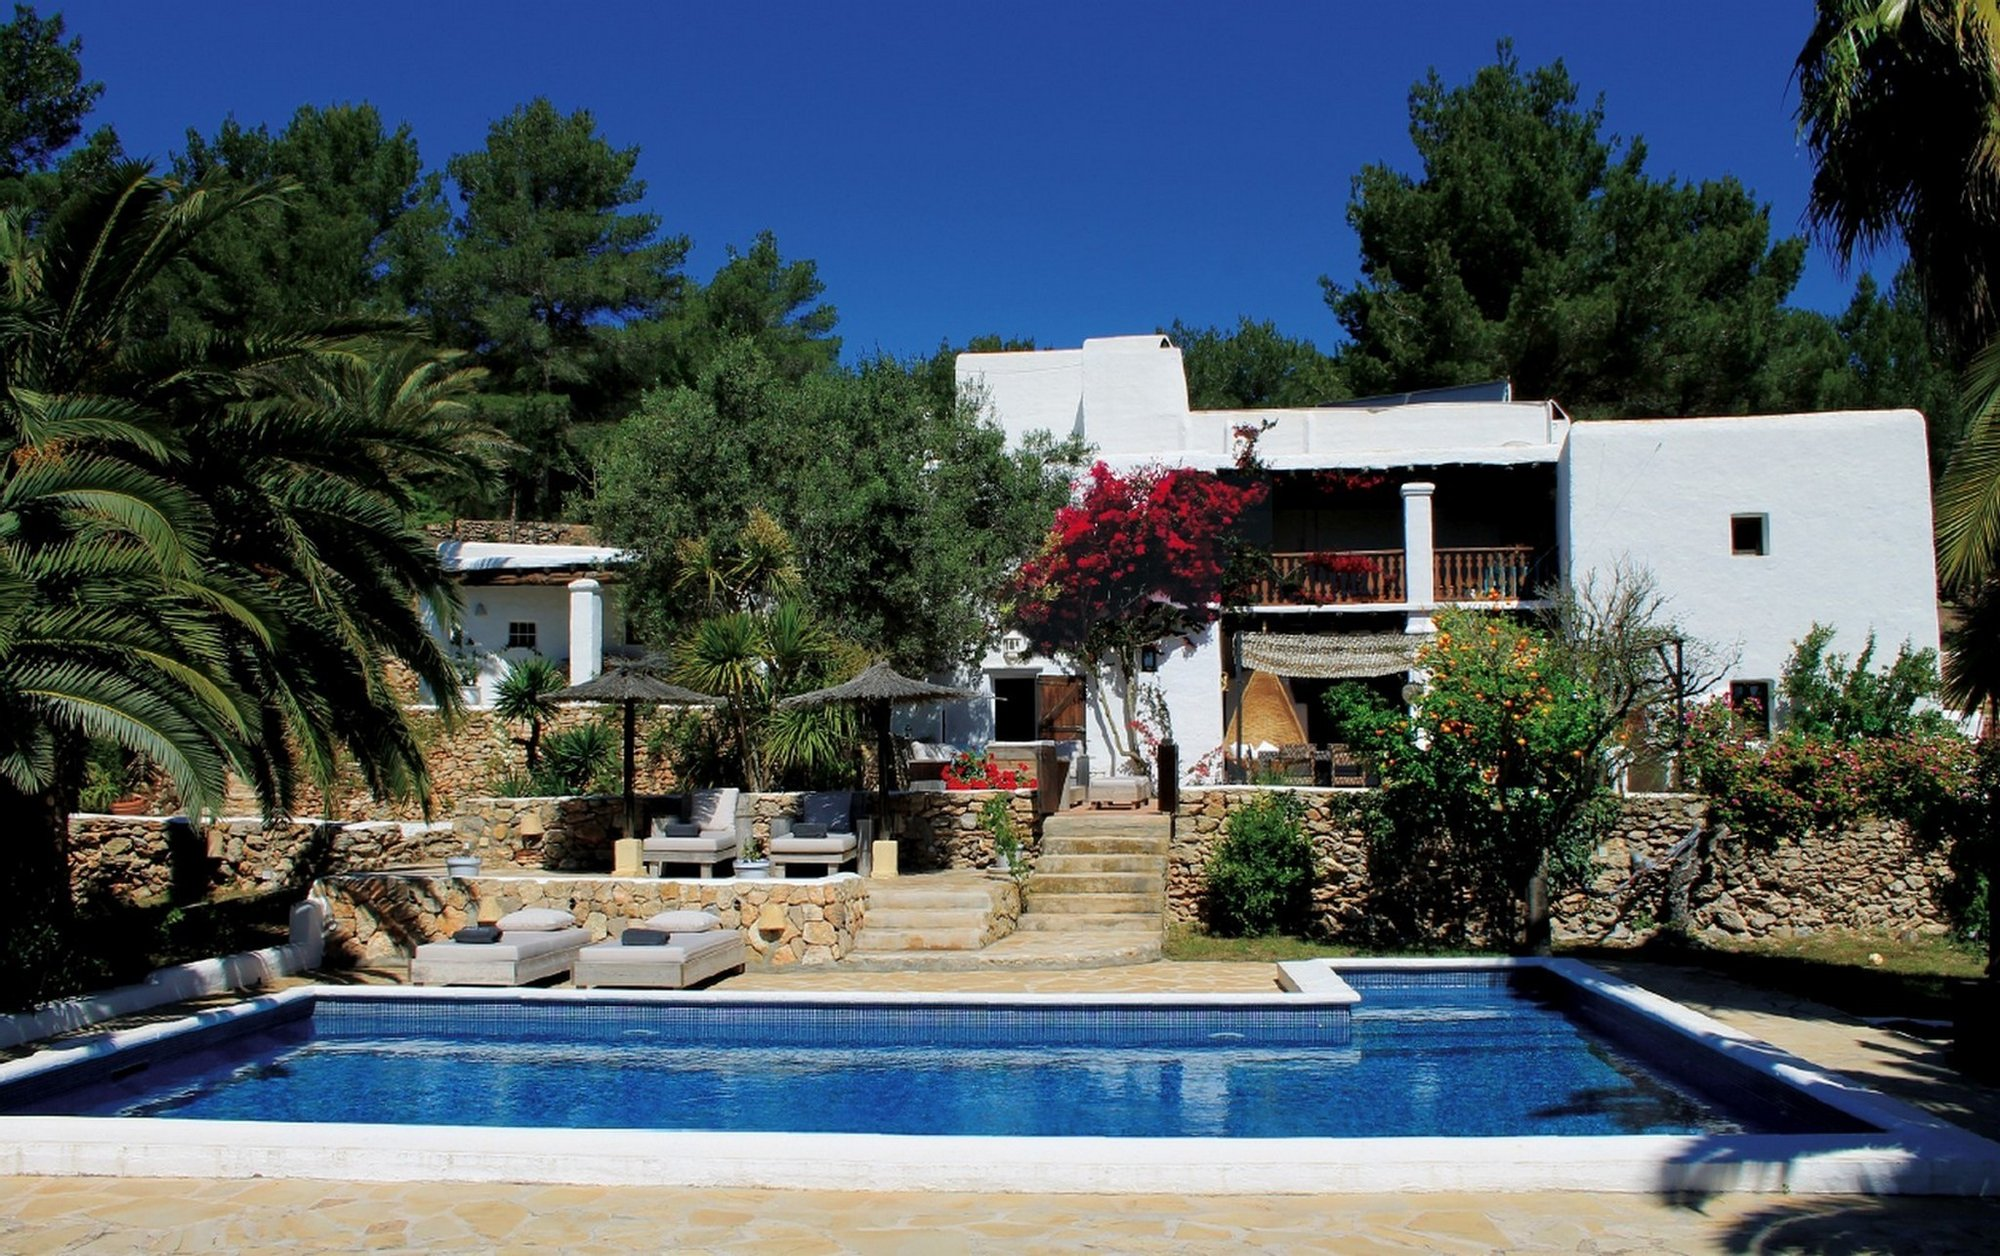 House in Ibiza, Balearic Islands, Spain 1